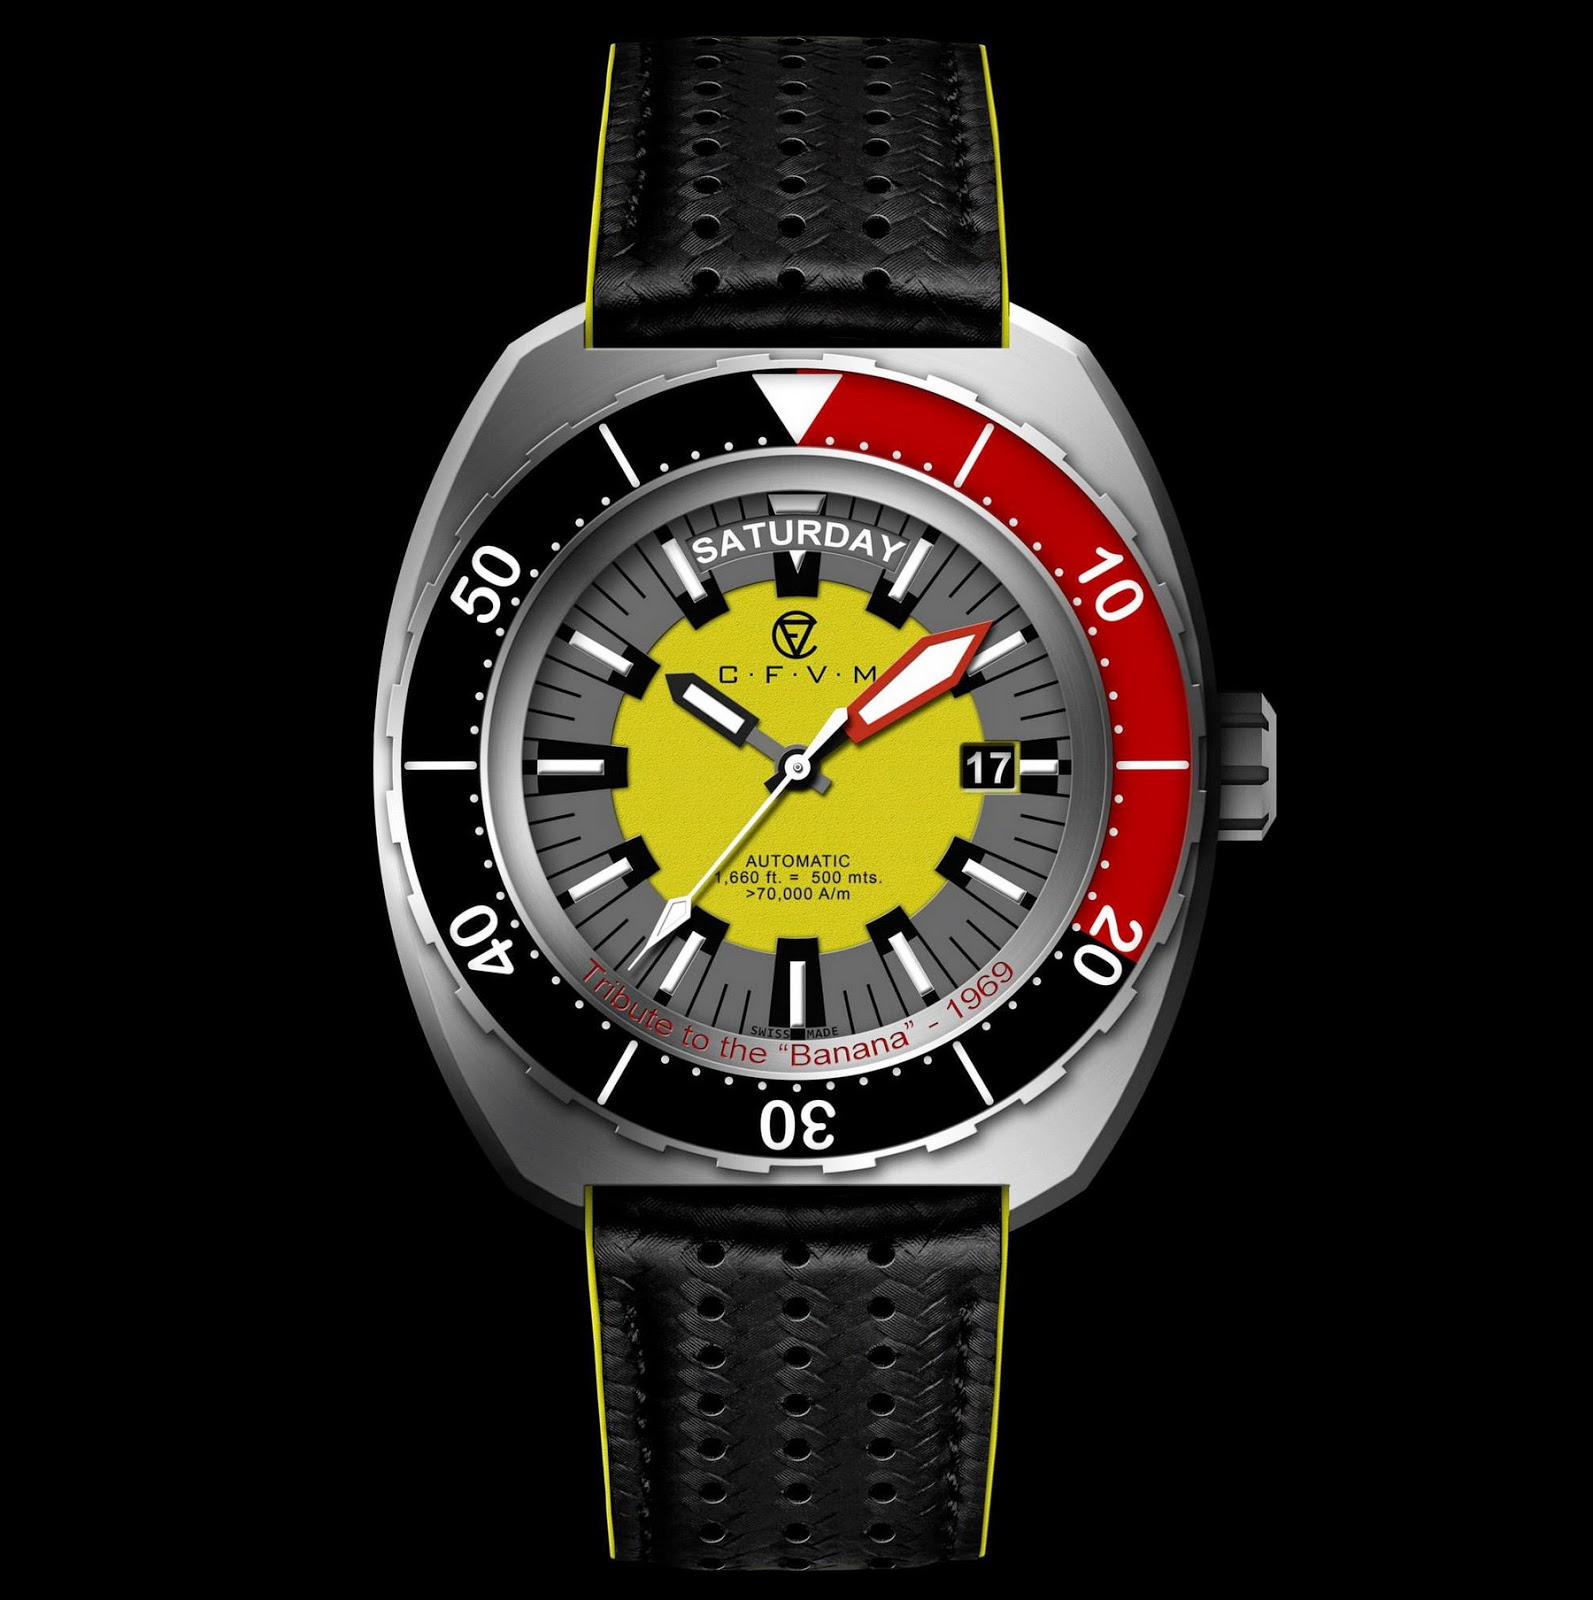 cares new page is showthread looks dial cool as watches time ever t the configurator can kalmar it opens tell if coolest who cause you hell this